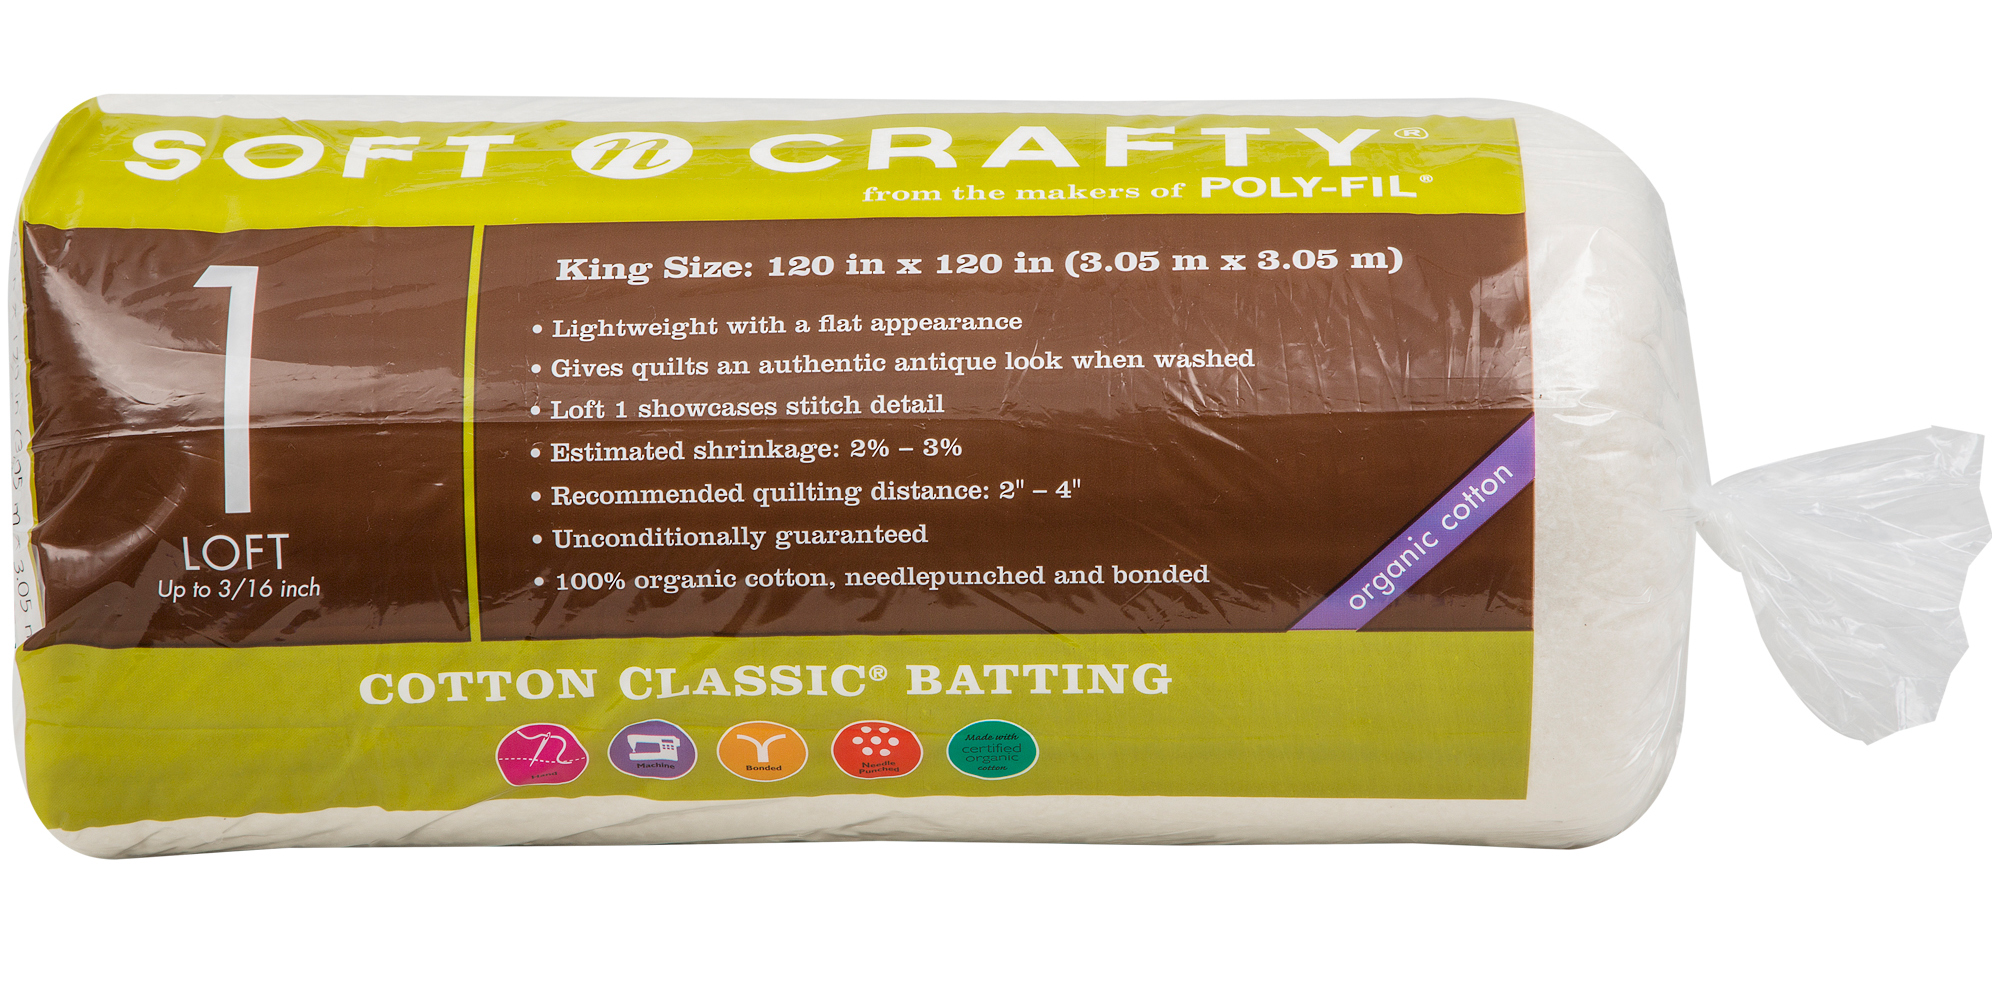 Fairfield Soft N Crafty Cotton Classic Batting 120\u0022x120\u0022